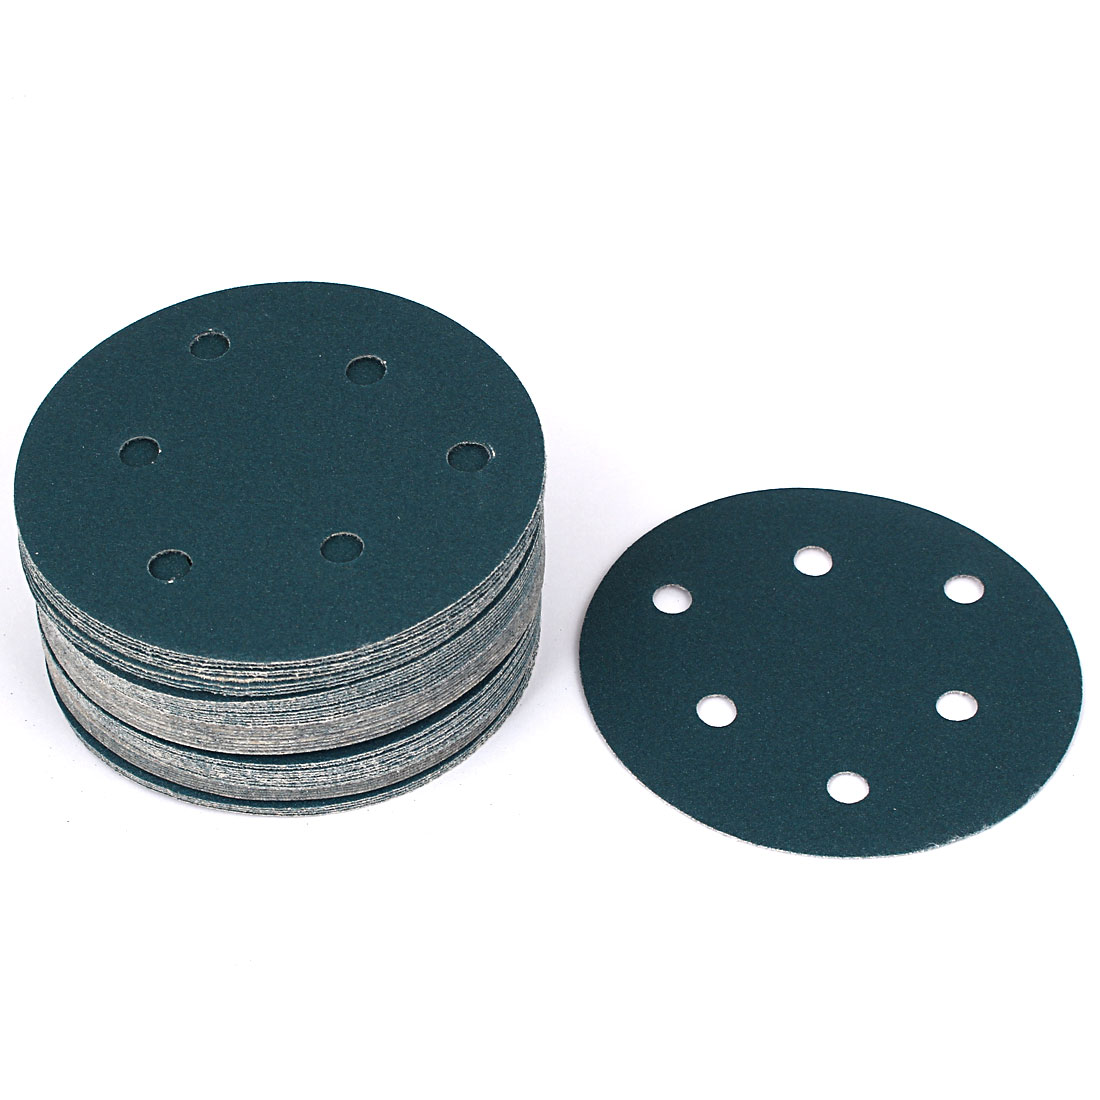 "5"" Sandpaper Auto Car Paint Polishing Sanding Disc Hook and Loop Fastener 6 Holes 120 Grit 50pcs"